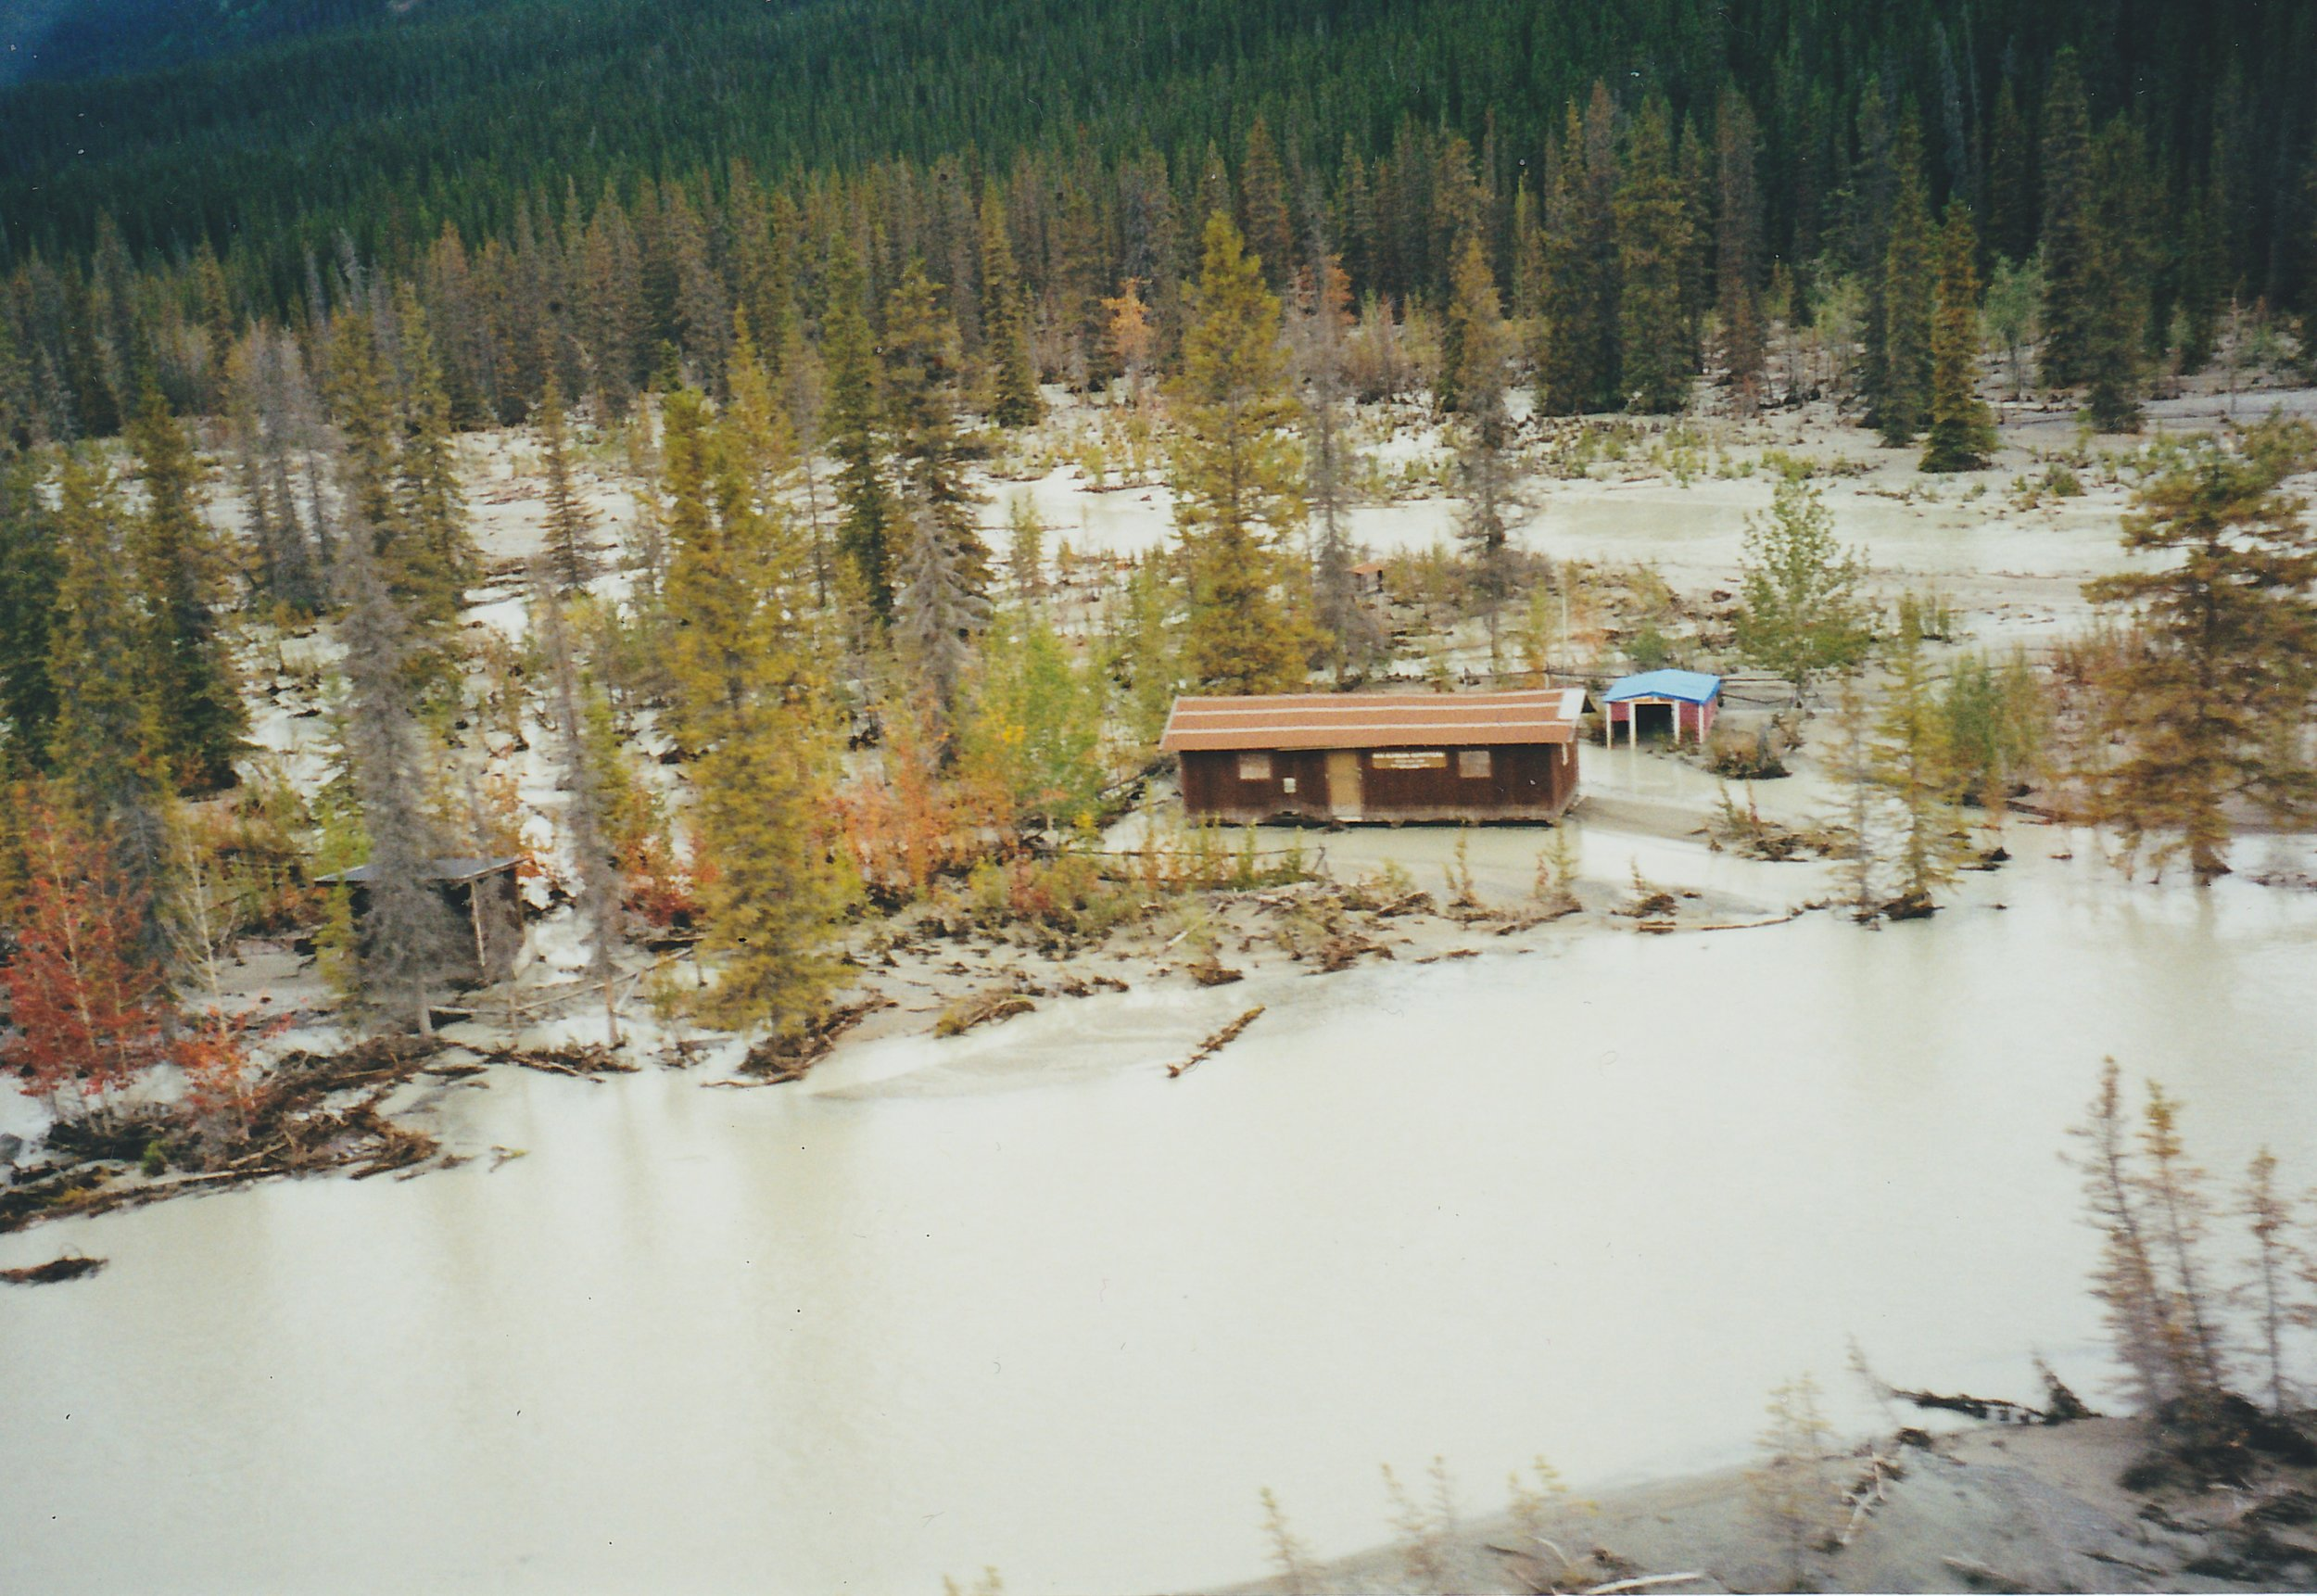 Bryson Bar- You can see the old water line on the side of the cabin. This is one of the main channels of the Chitina River now.